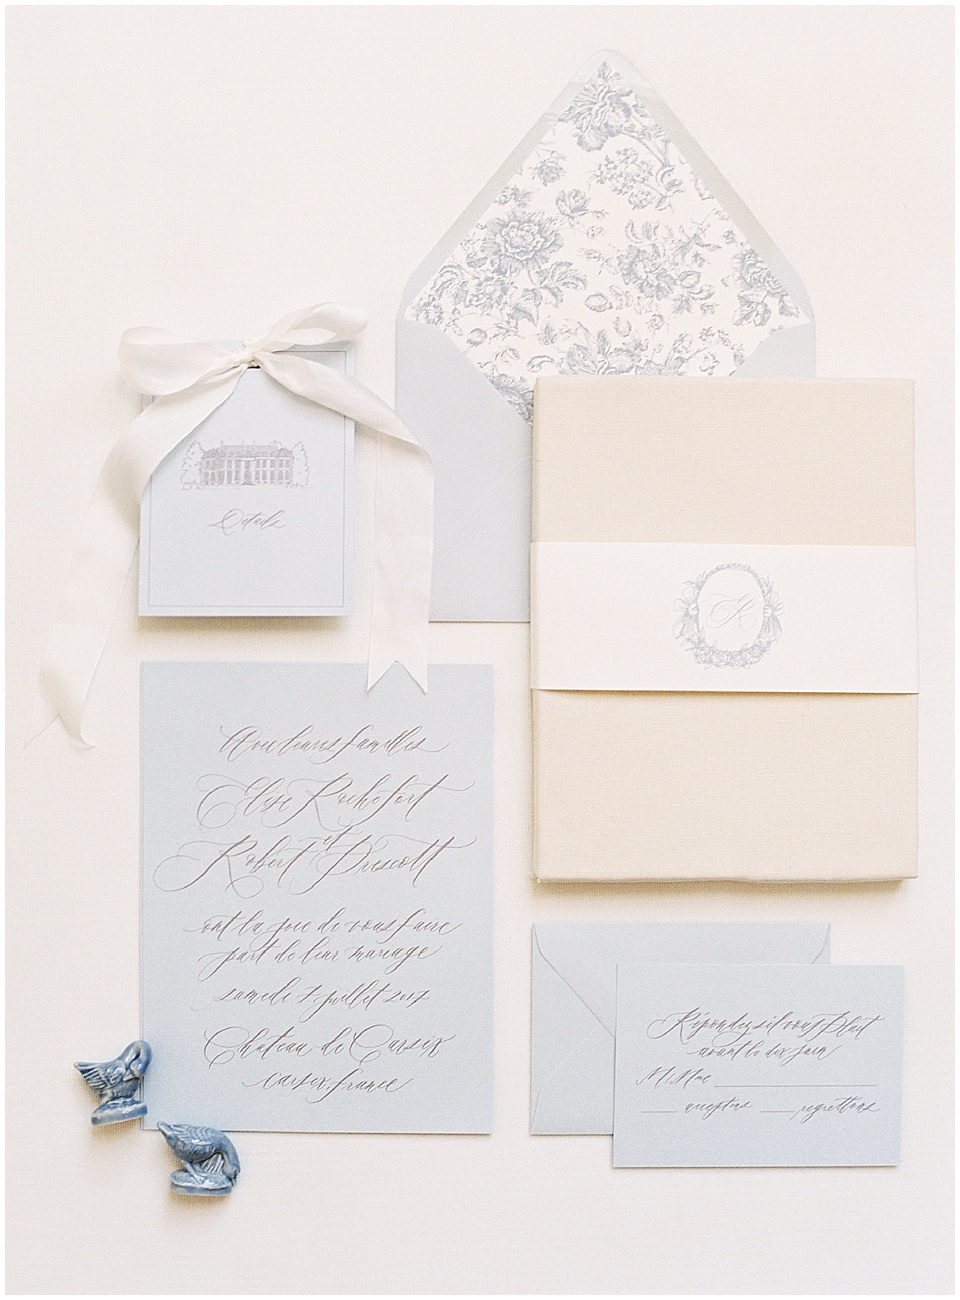 French paper suite | Light blue beige stationary | Joy Proctor Design | Written Word Calligraphy | French Wedding Inspiration | France Wedding | Destination Film Photographer | Paris Wedding | Fine Art Film Photographer | Whiskers and Willow Photography